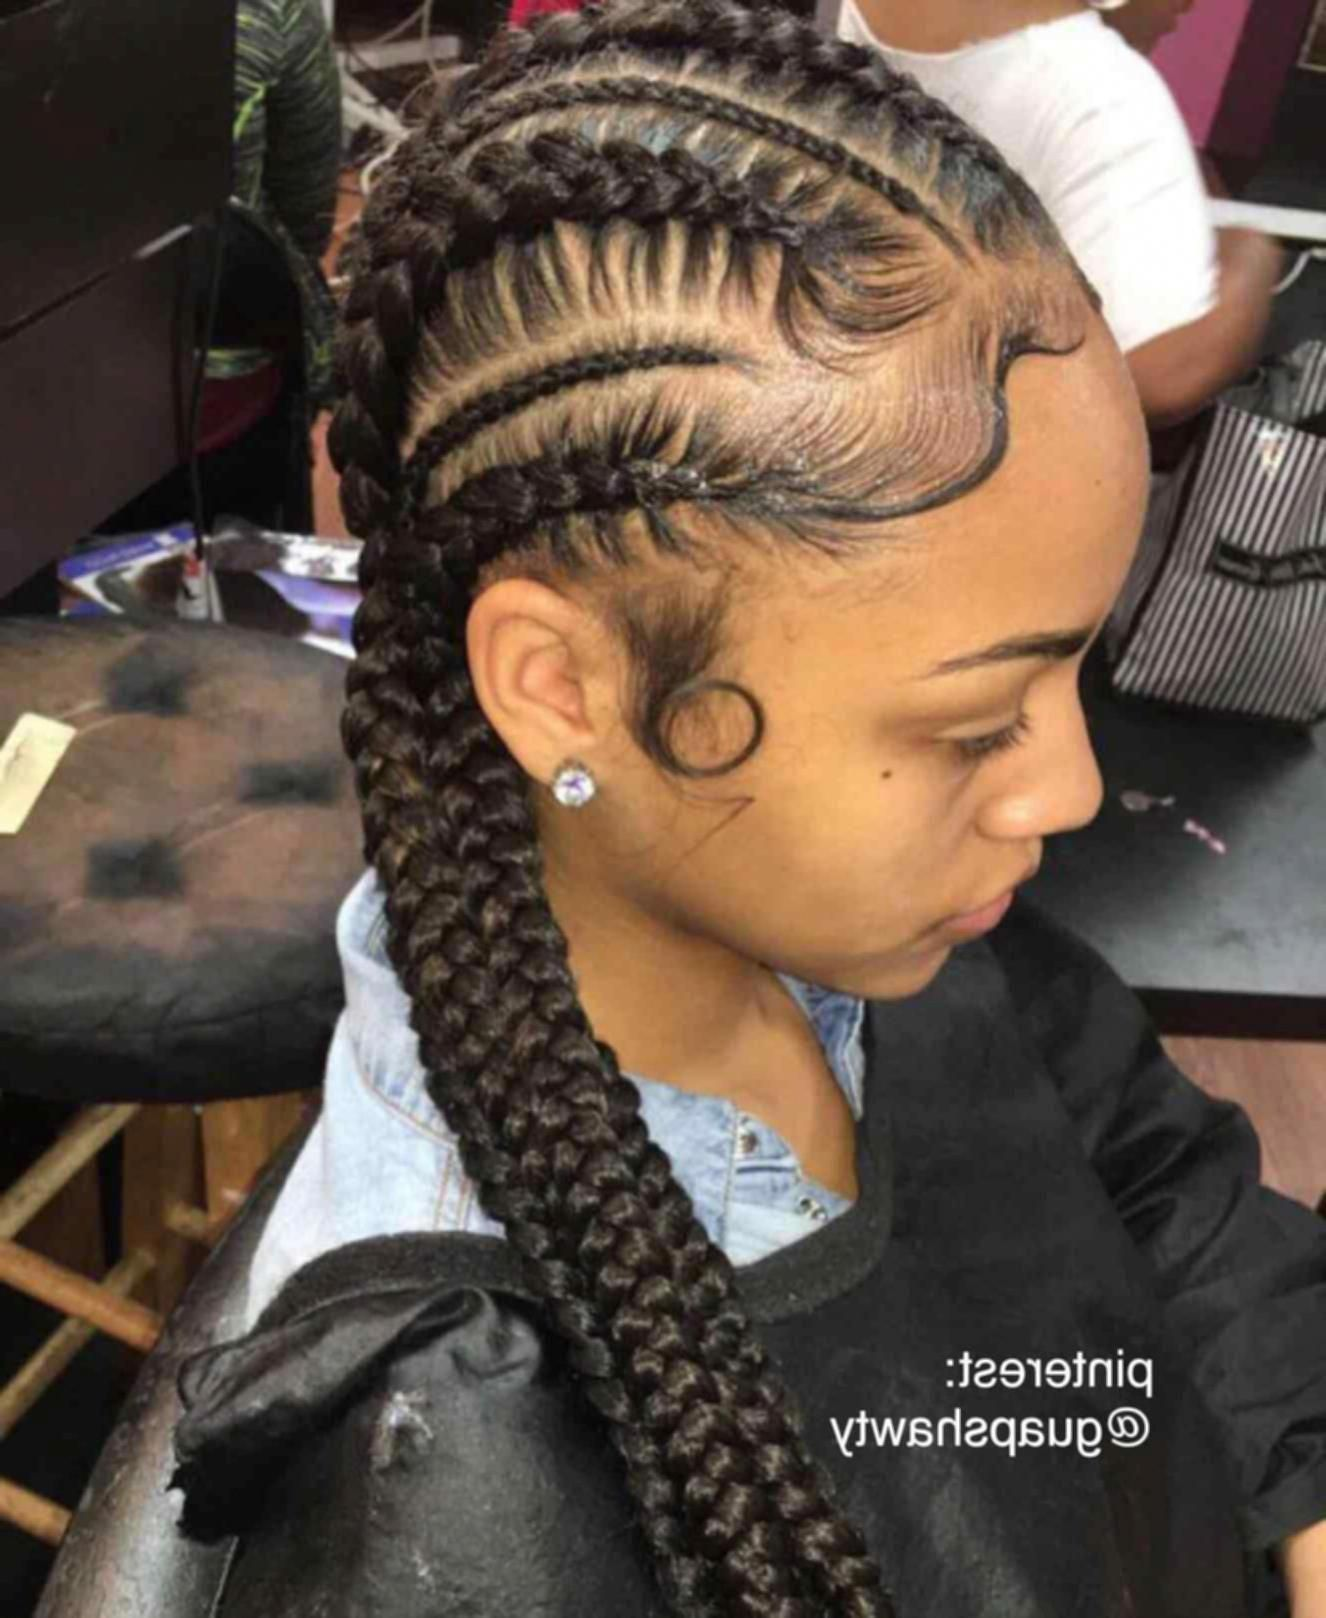 2 French Braid Hairstyles With Weave Blackhairstyles Weave Hairstyles Braided Braids Hairstyles Pictures French Braid Hairstyles